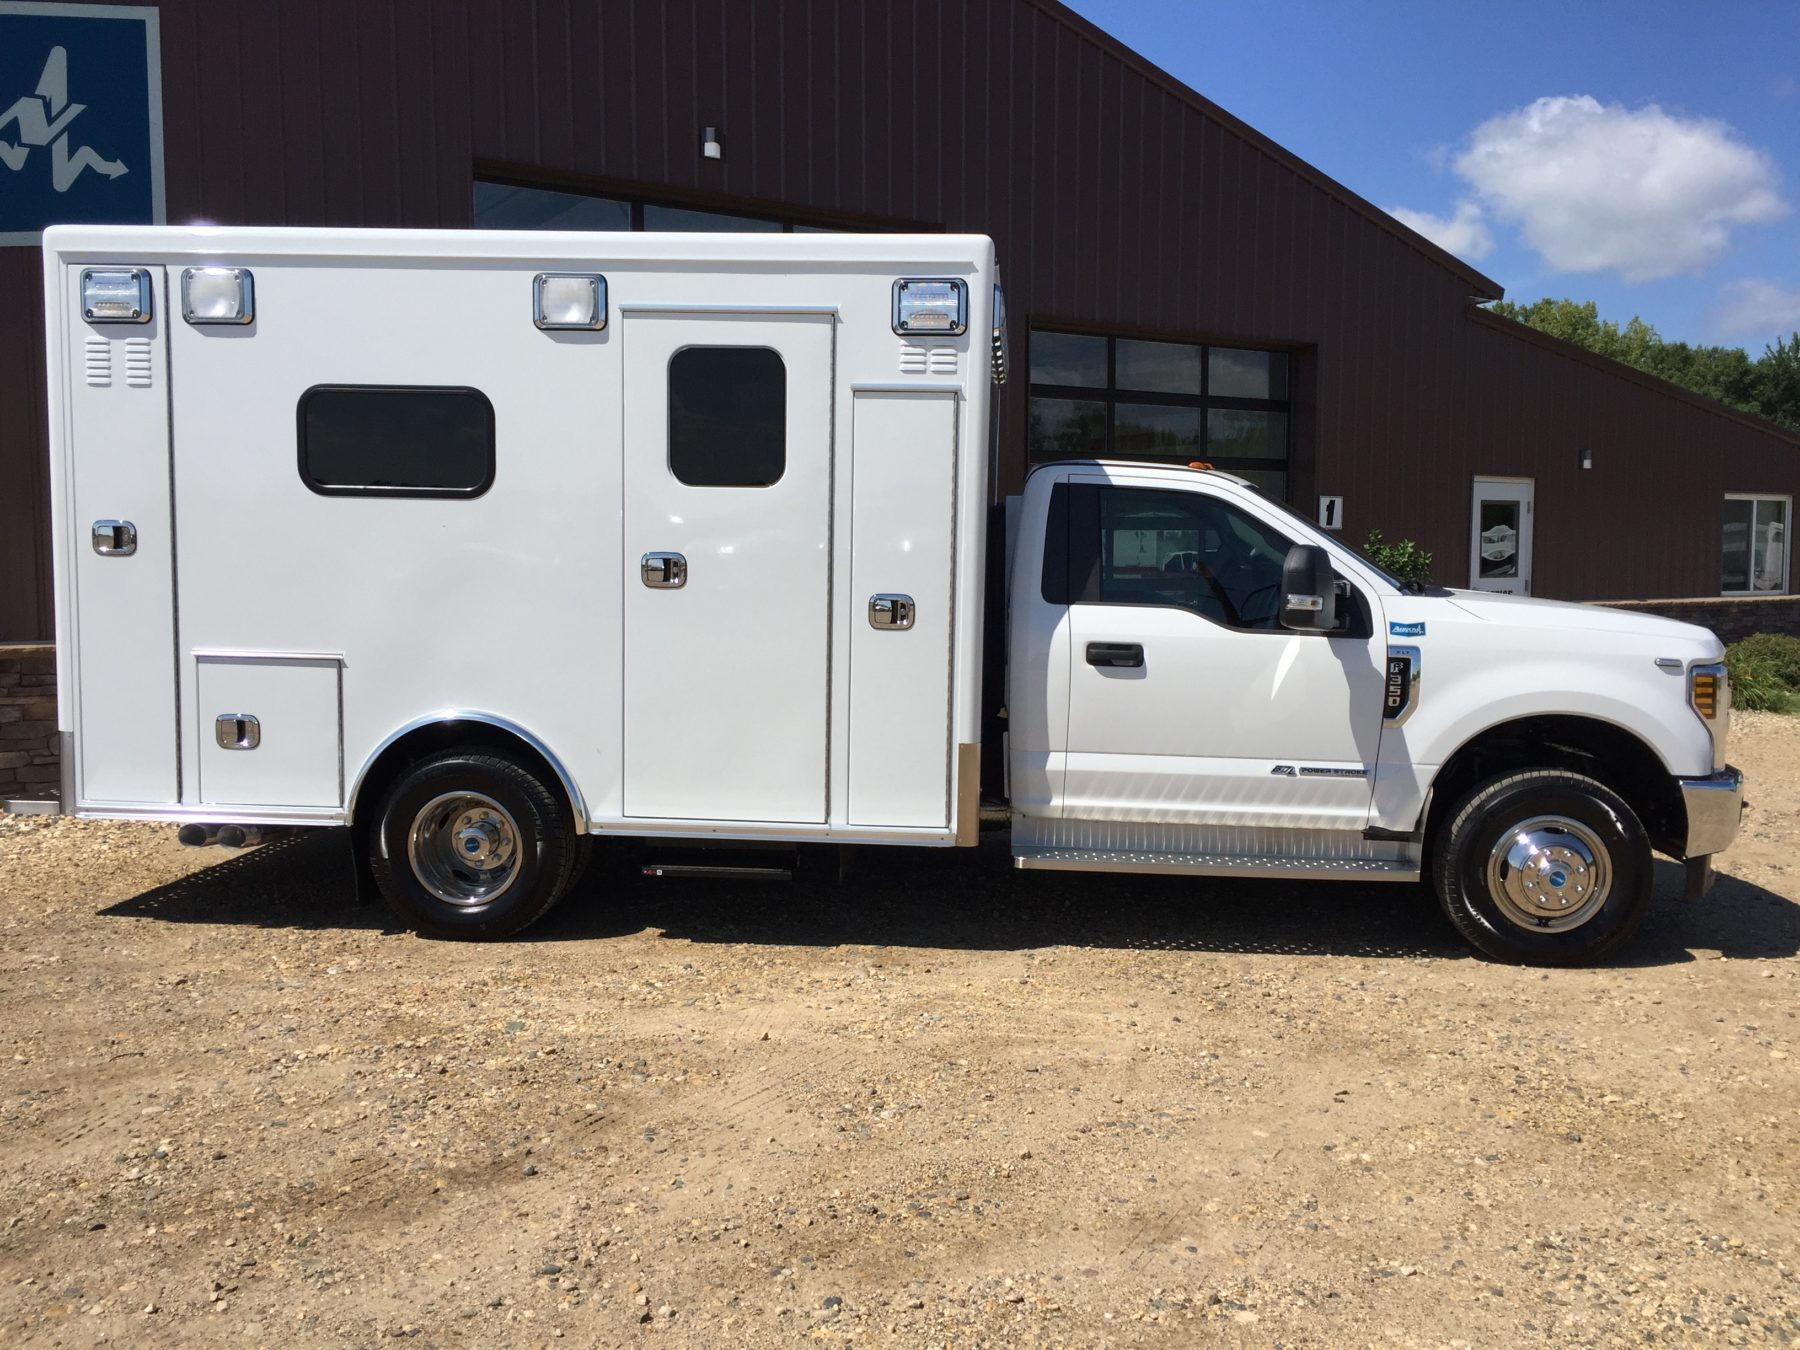 2018 Ford F350 4x4 Type 1 Ambulance For Sale – Picture 4